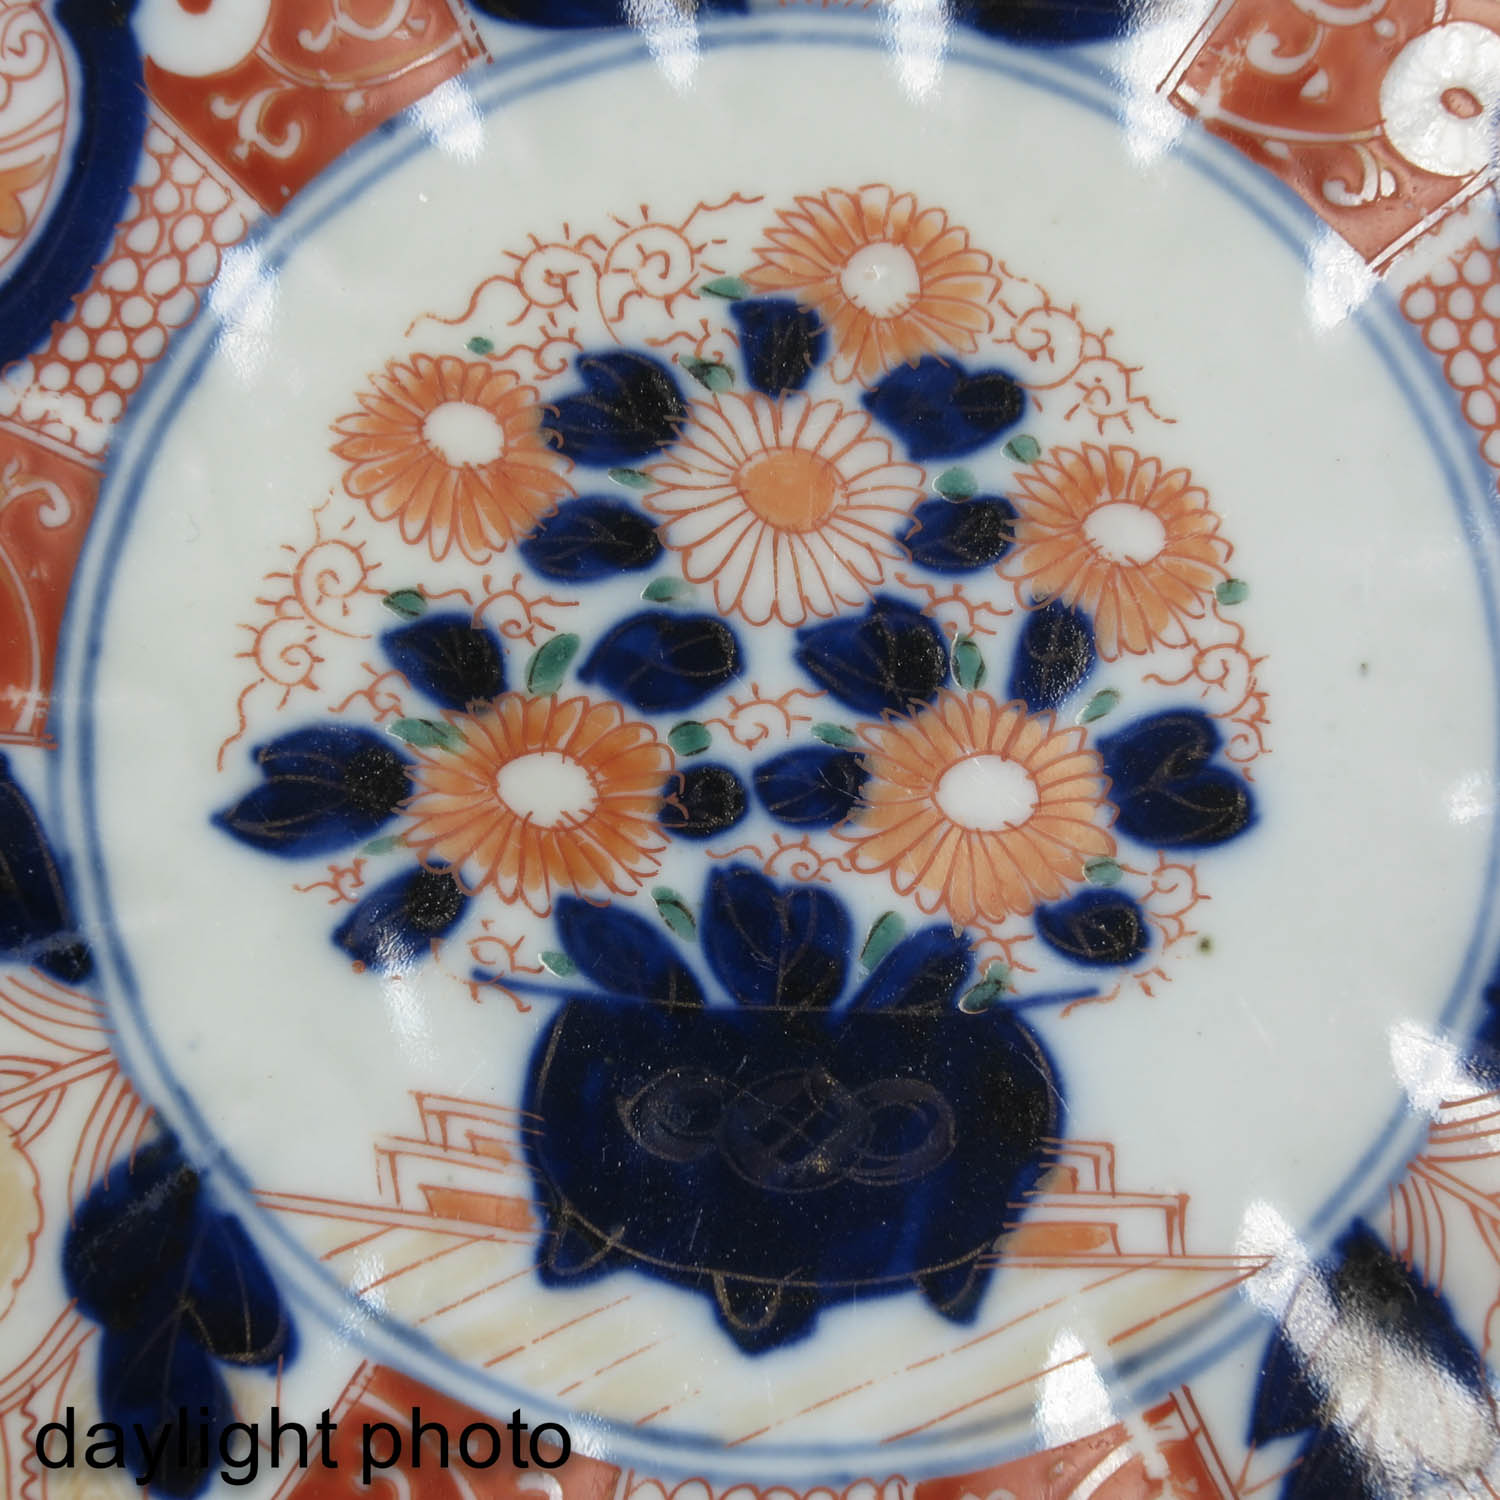 A Collection of 4 Imari Plates - Image 9 of 10